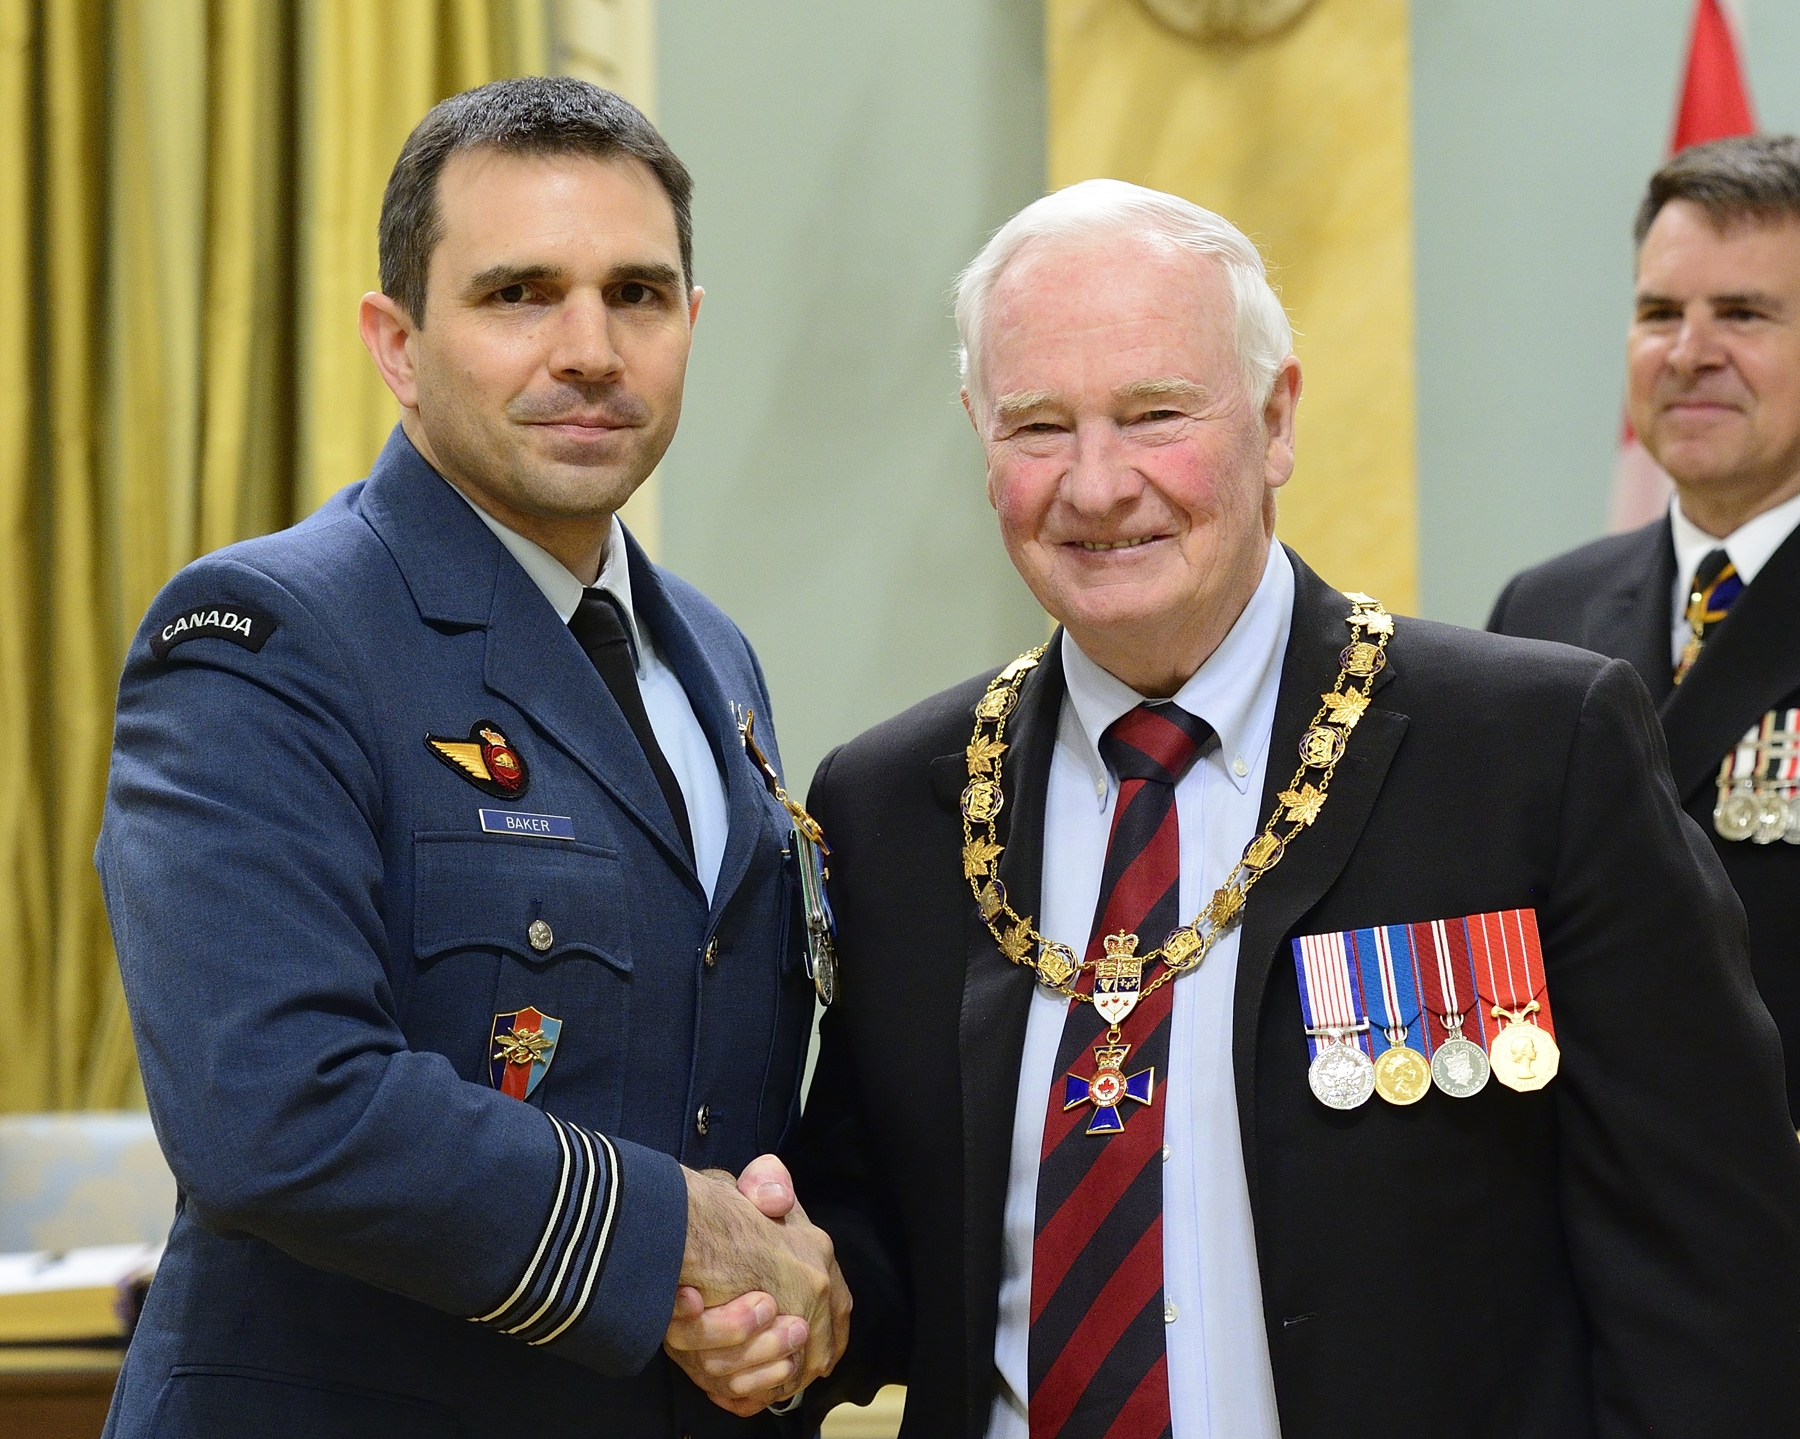 Governor General and Commander-in-Chief of Canada David Johnston presents the Order of Military Merit to Lieutenant-Colonel Bryan Philip Baker, OMM, CD, from 1 Engineer Support Unit, Kingston, Ontario. PHOTO: Sergeant Johanie Mahieu, Rideau Hall ©, GG05-2017-0075-014-baker